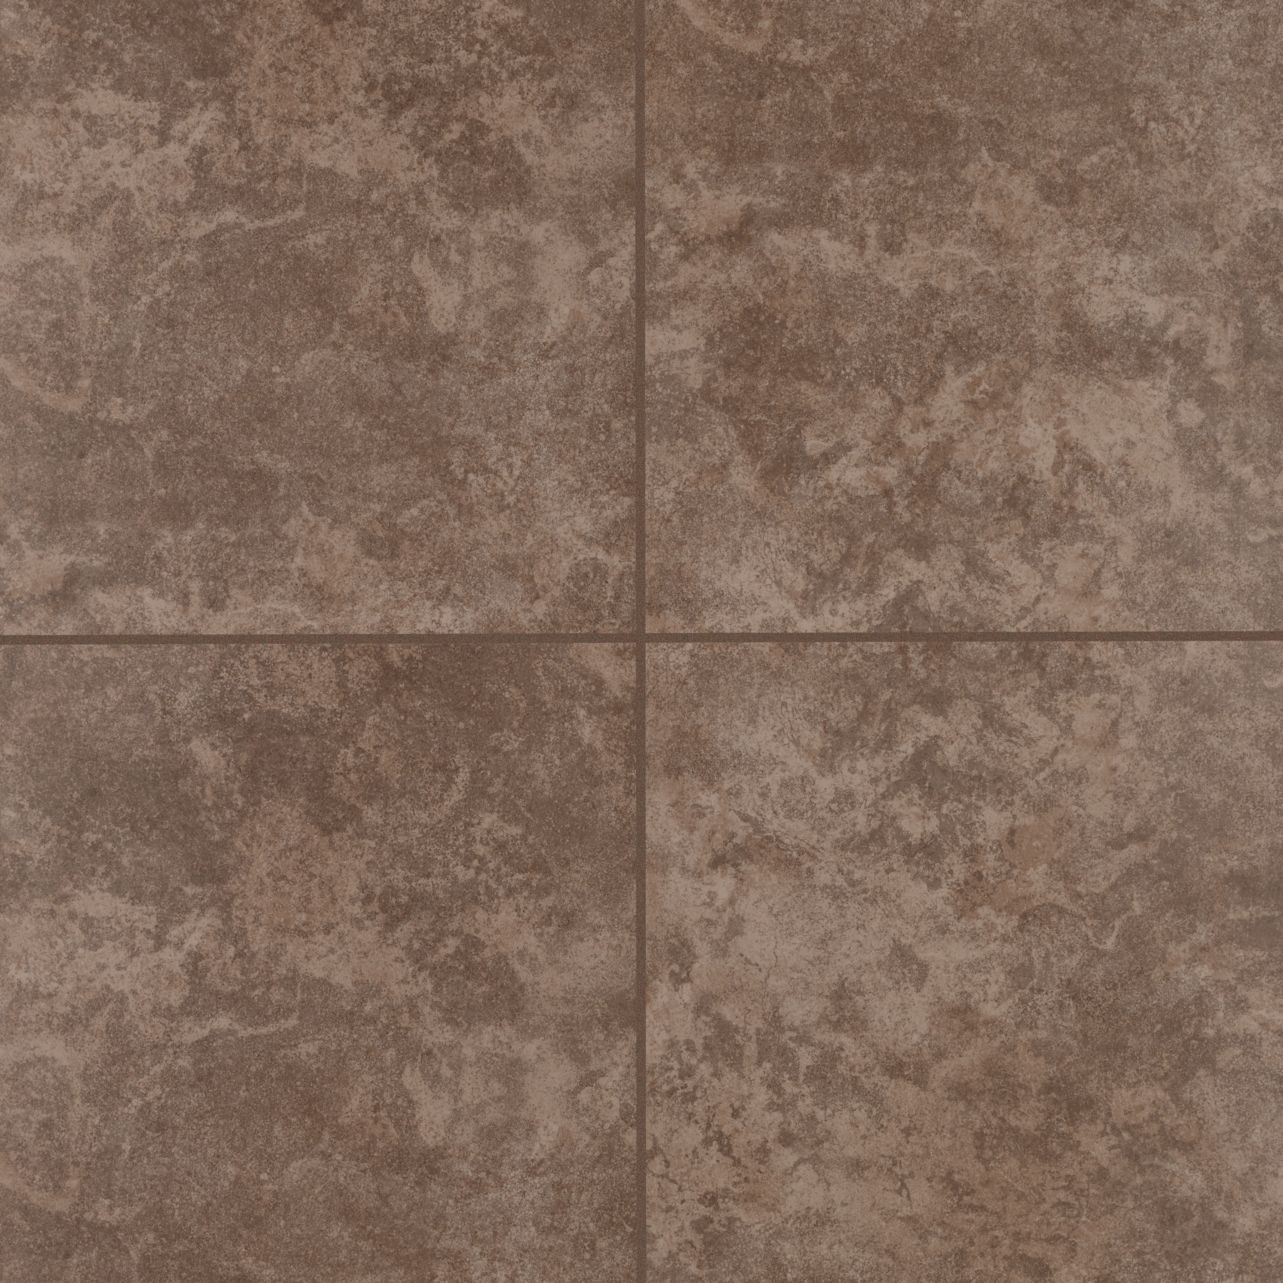 CeramicPorcelainTile Astello Floor Brown  main image